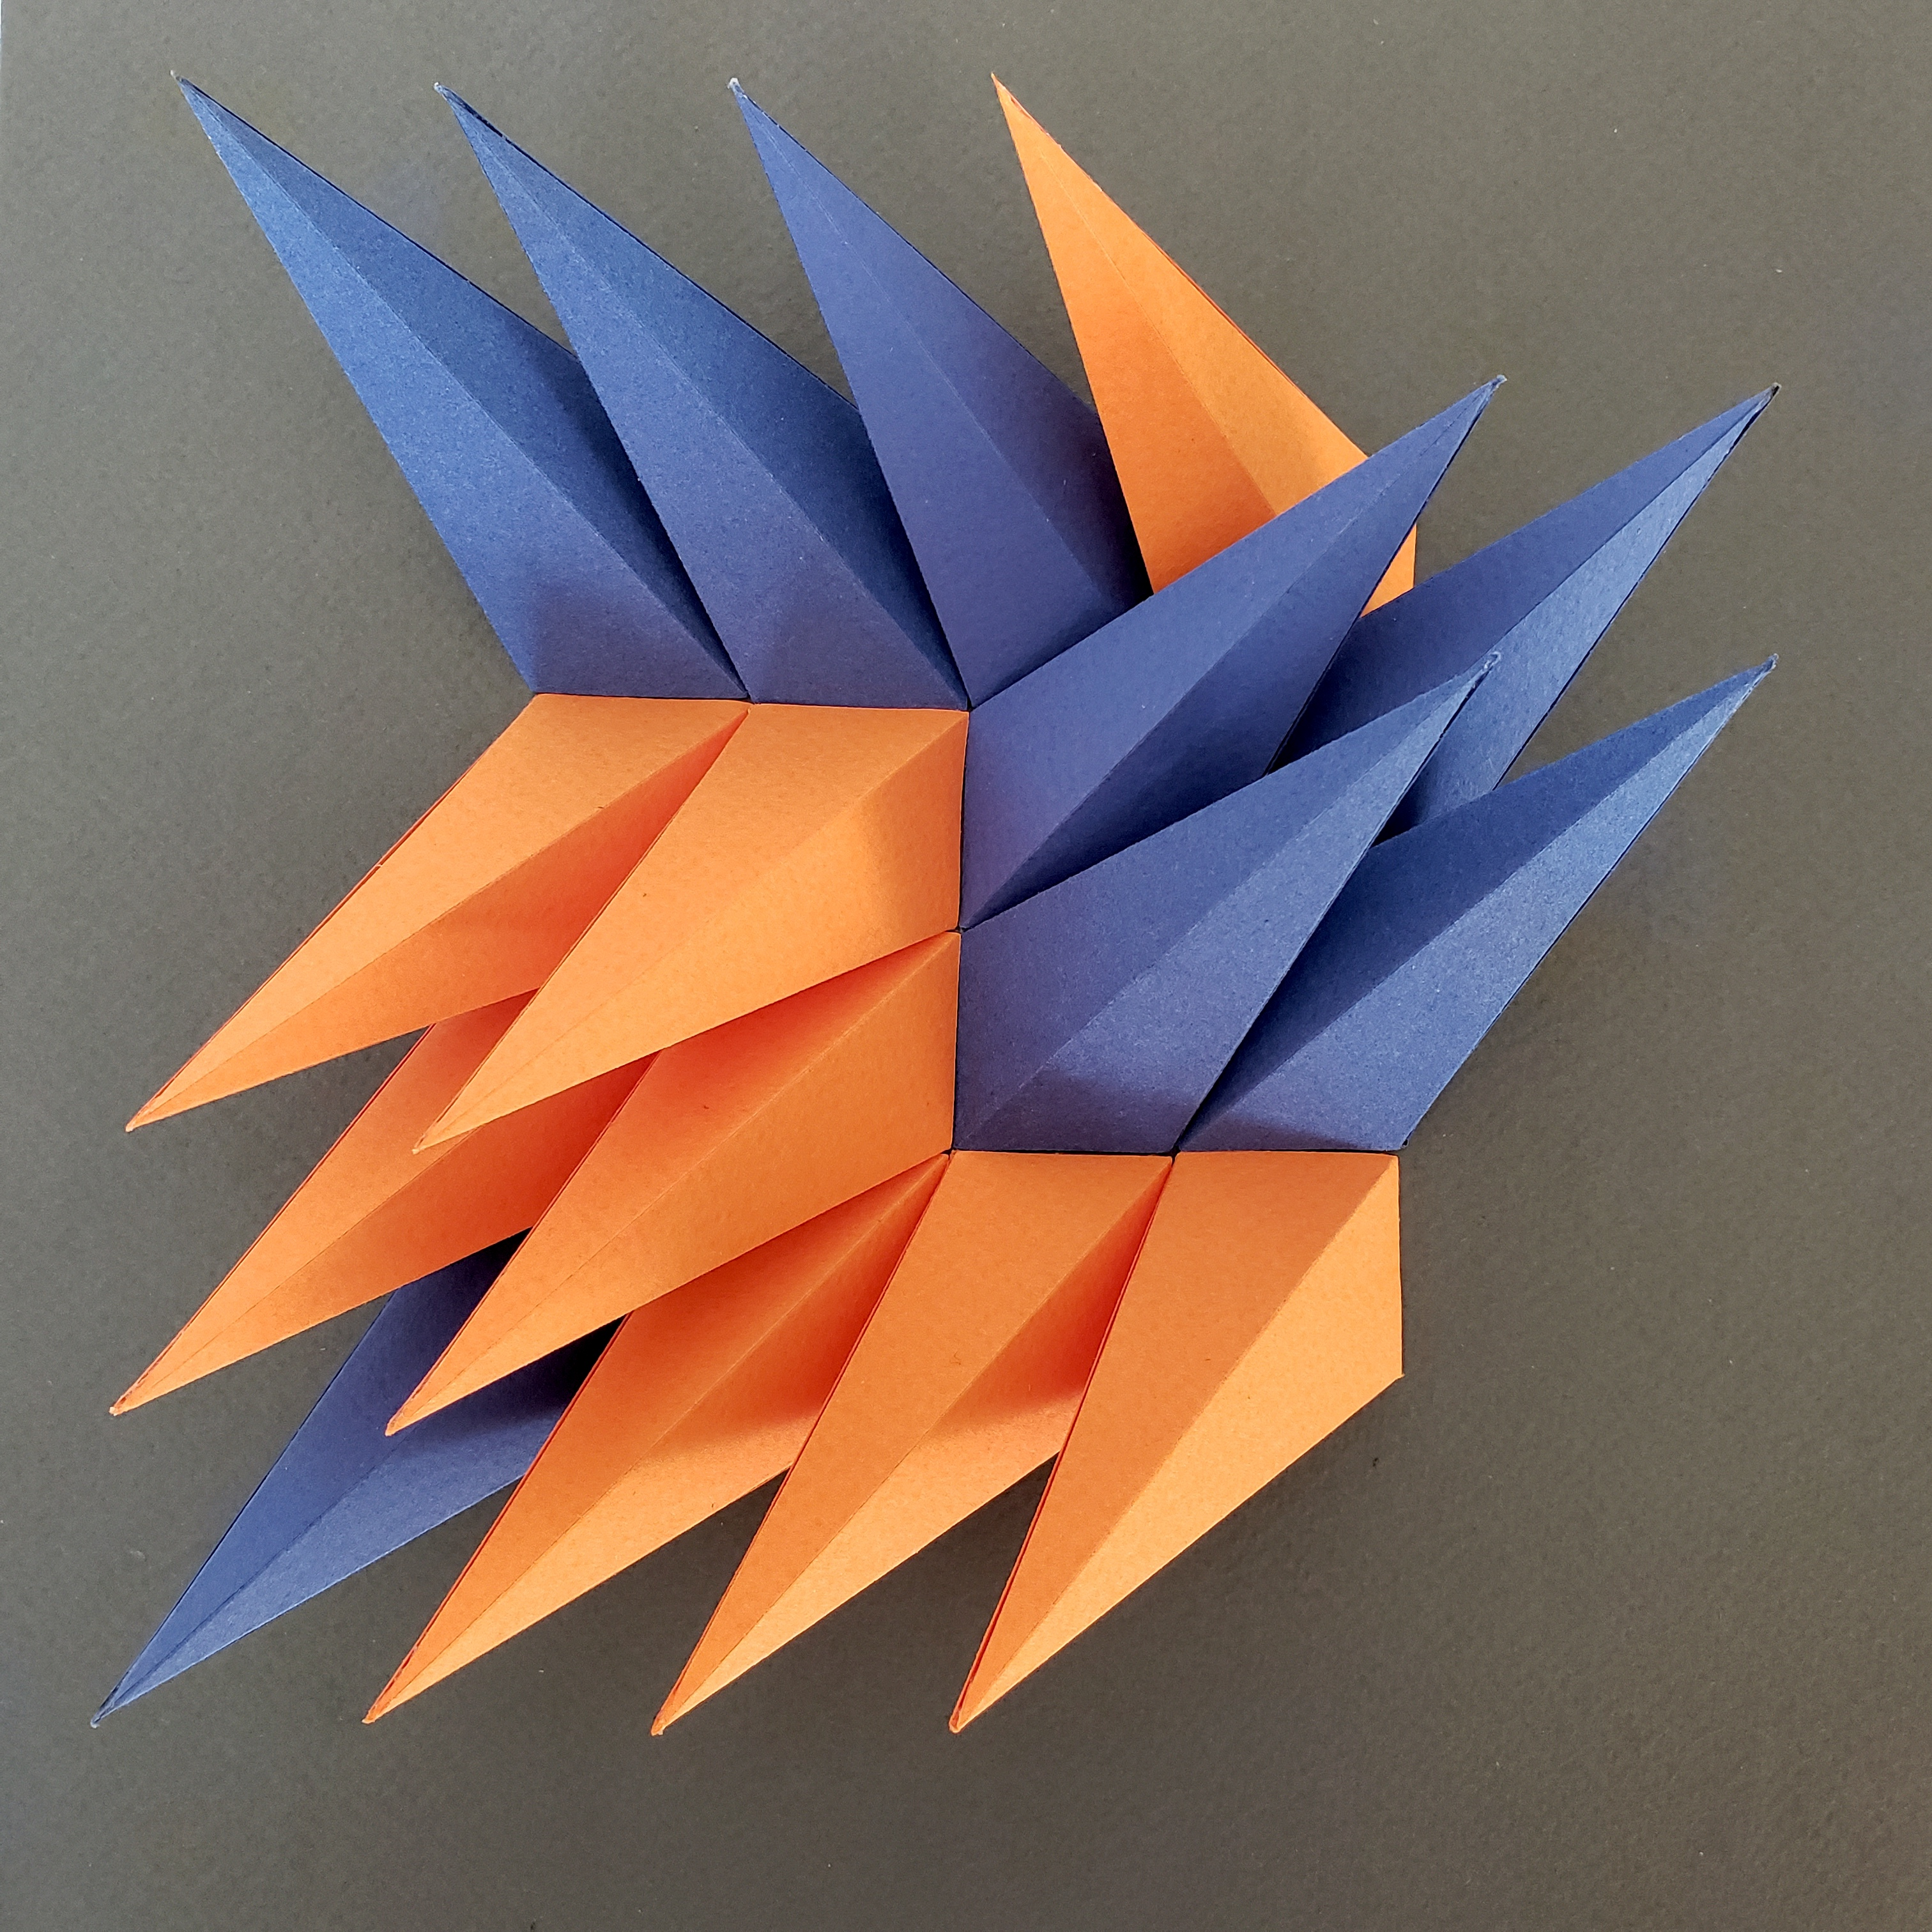 Abstract Shapes Carefully Made From Paper By Zahra Ammar